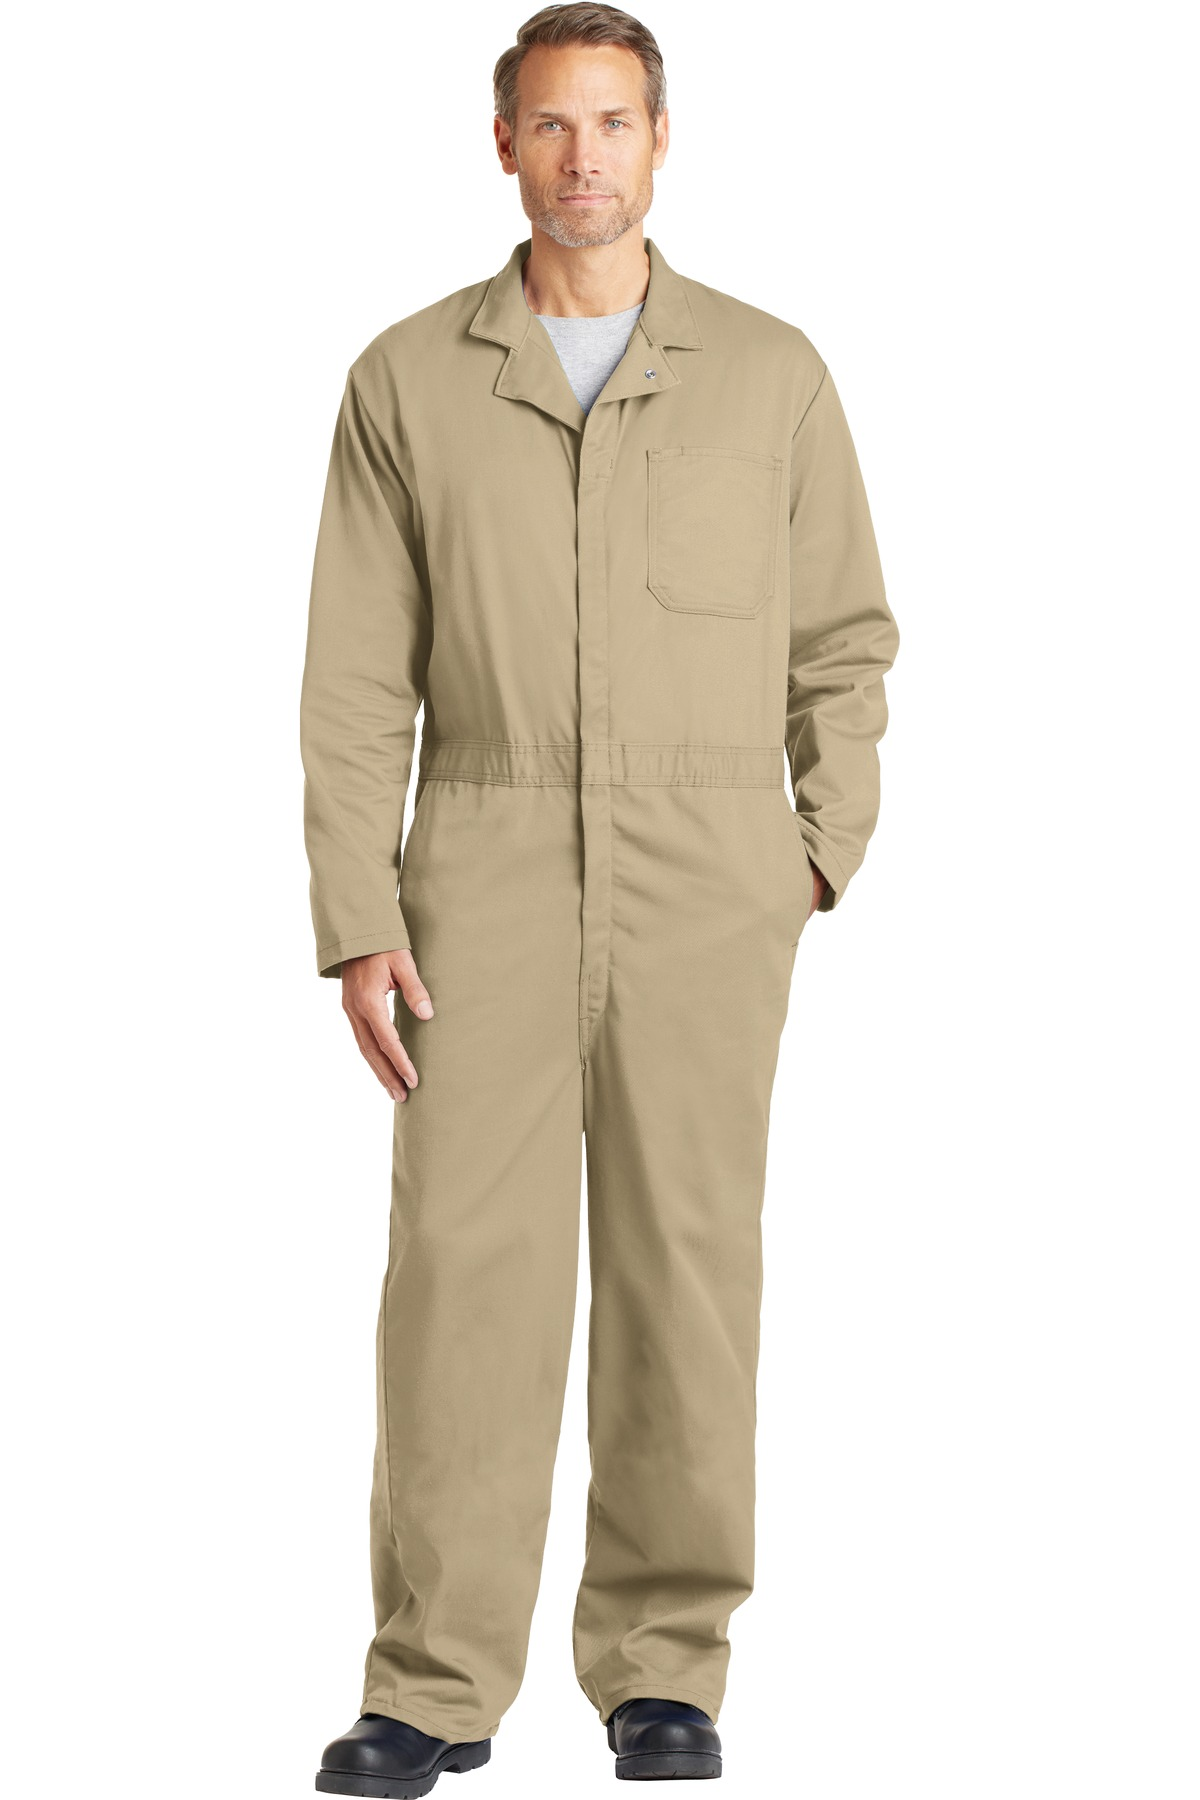 Bulwark  EXCEL FR  CEC2LONG - Tall Classic Coverall